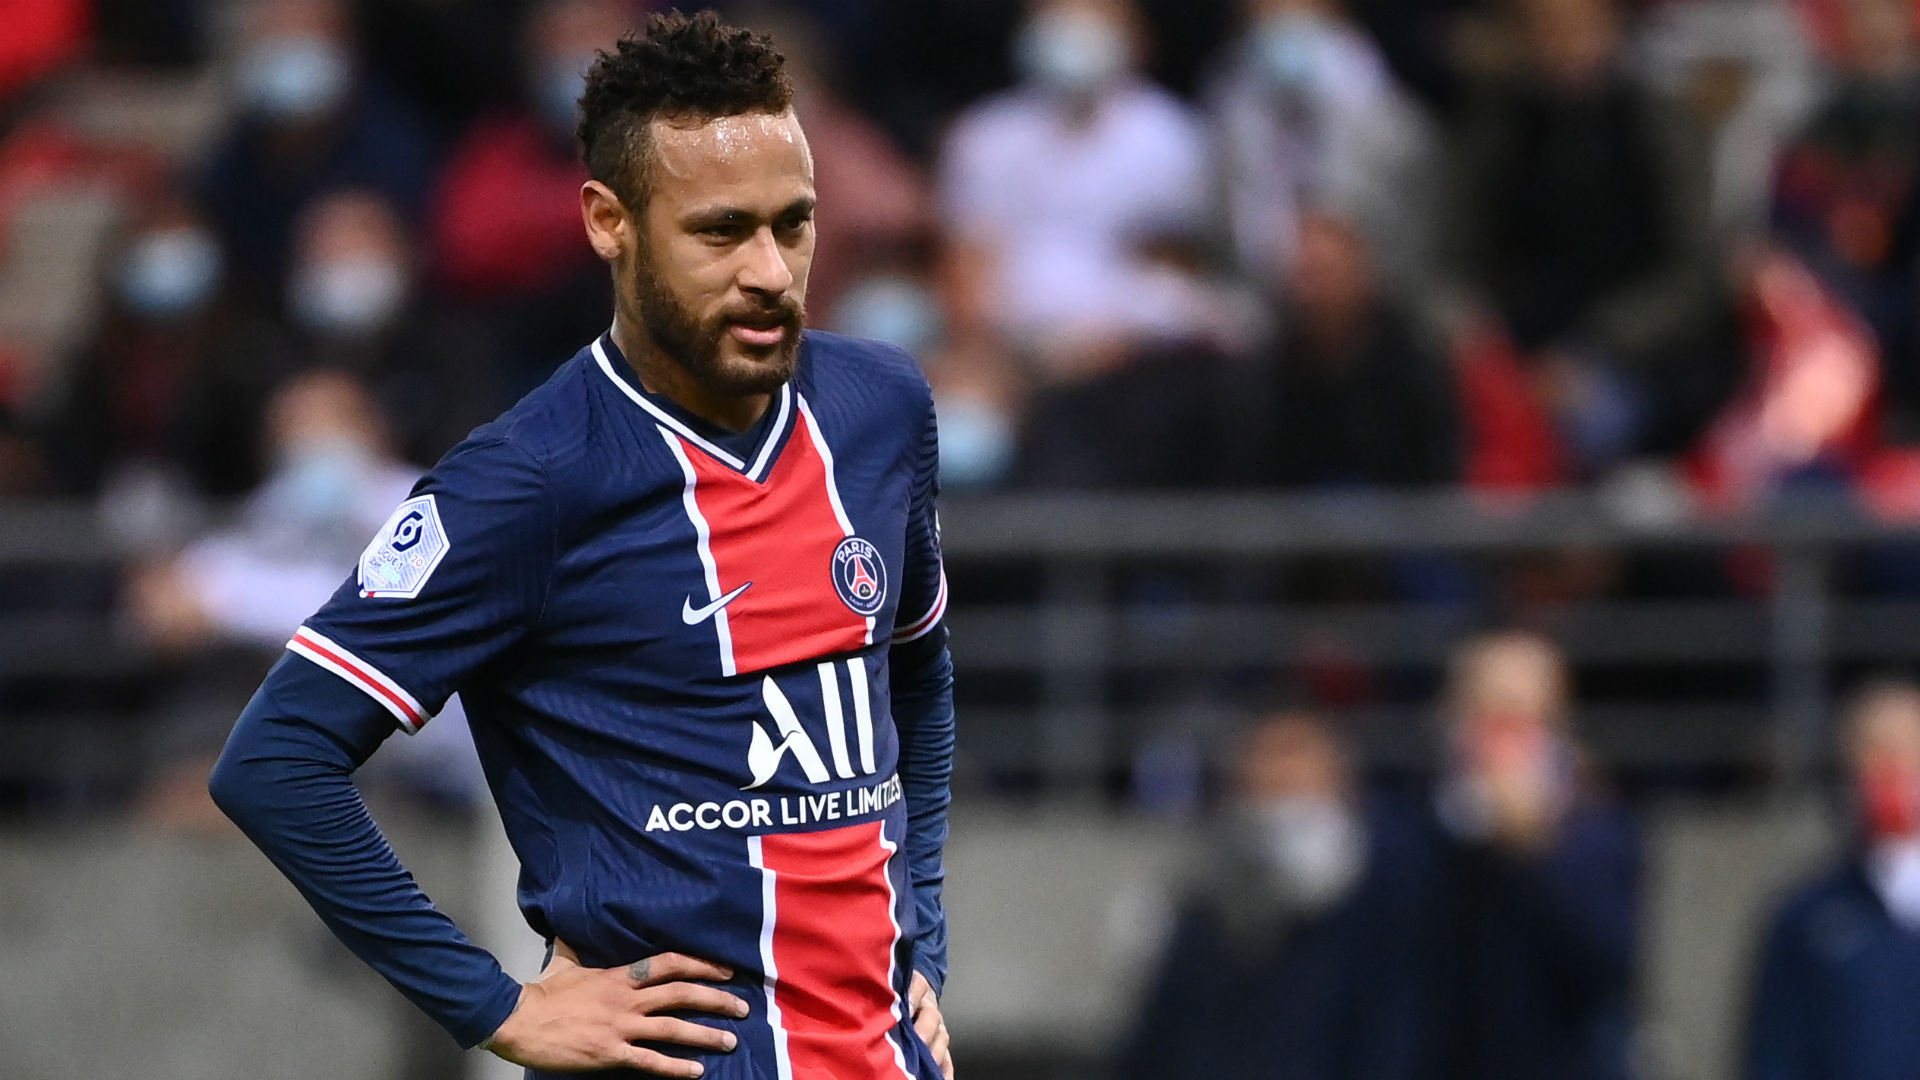 PSG ready to risk Neymar in key Champions League clash despite Brazilian being far from match fit